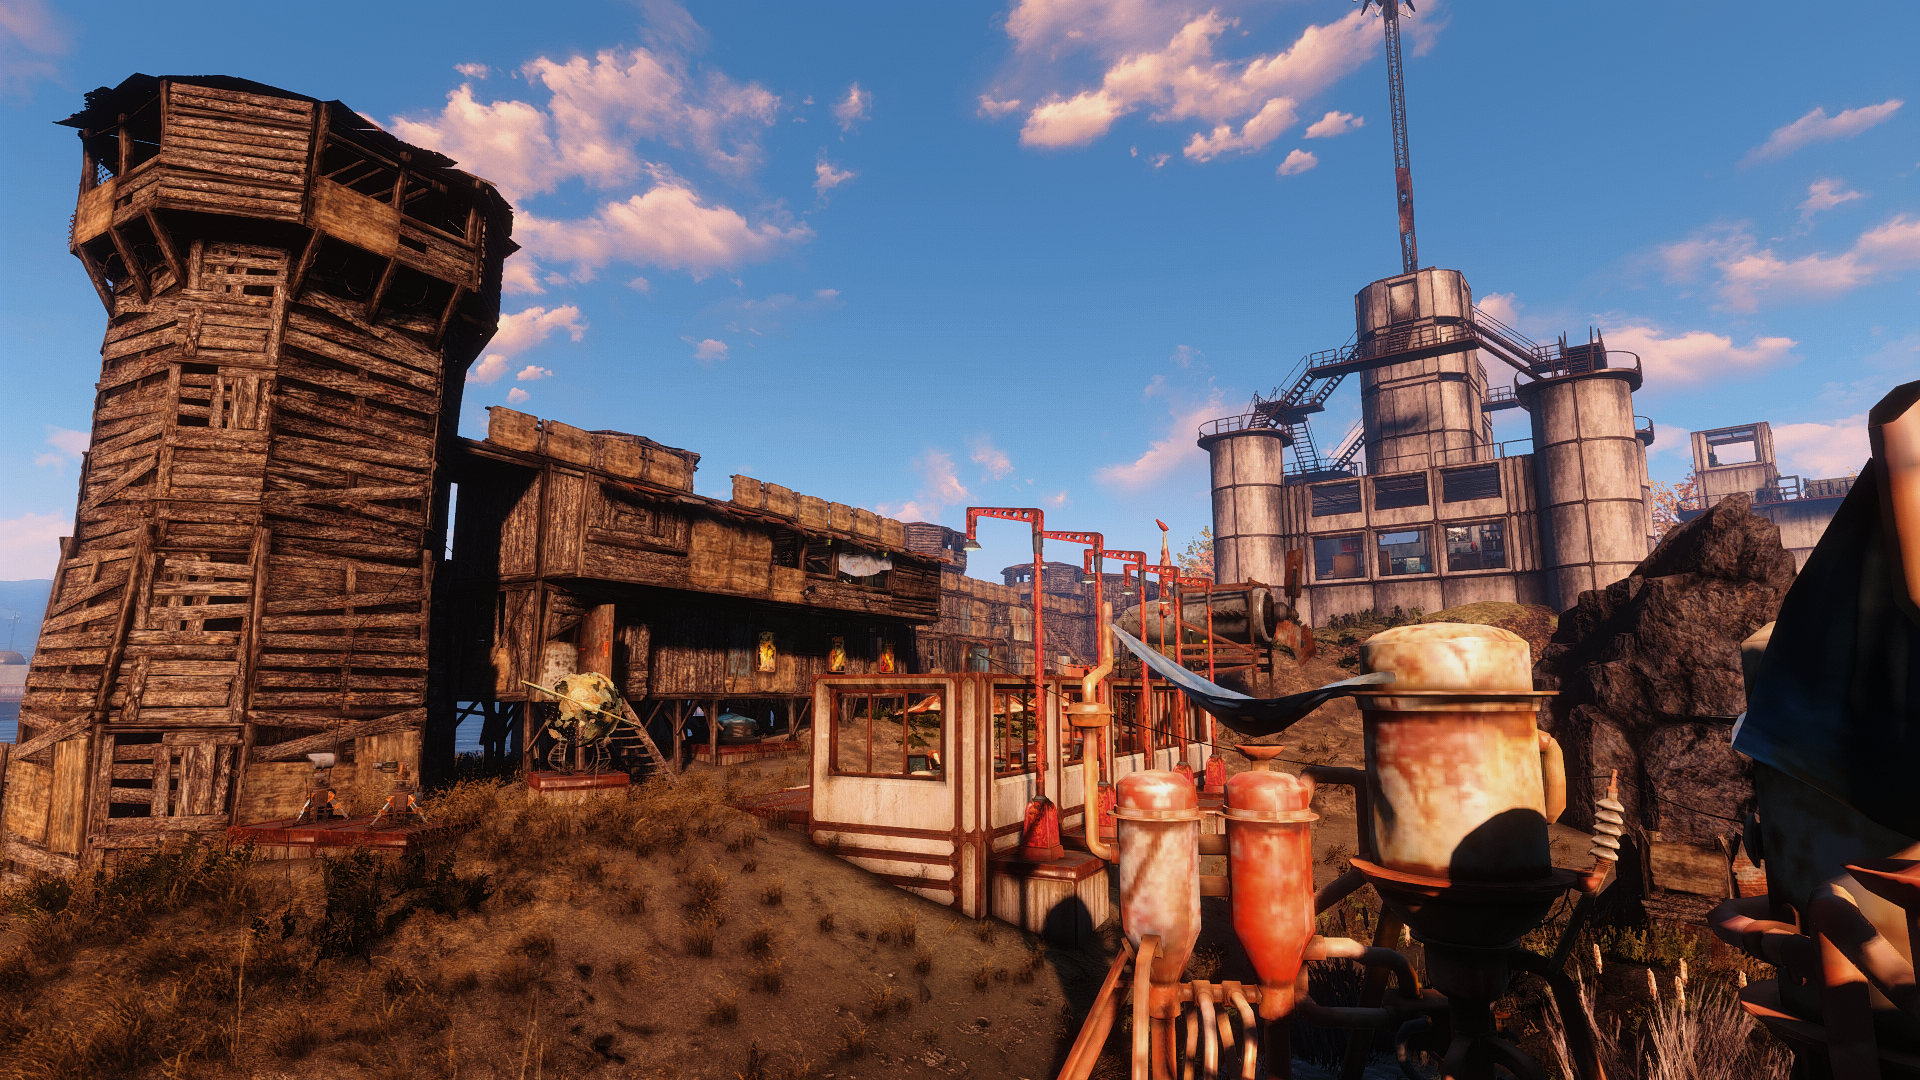 fallout 4 how to get to spectacle island